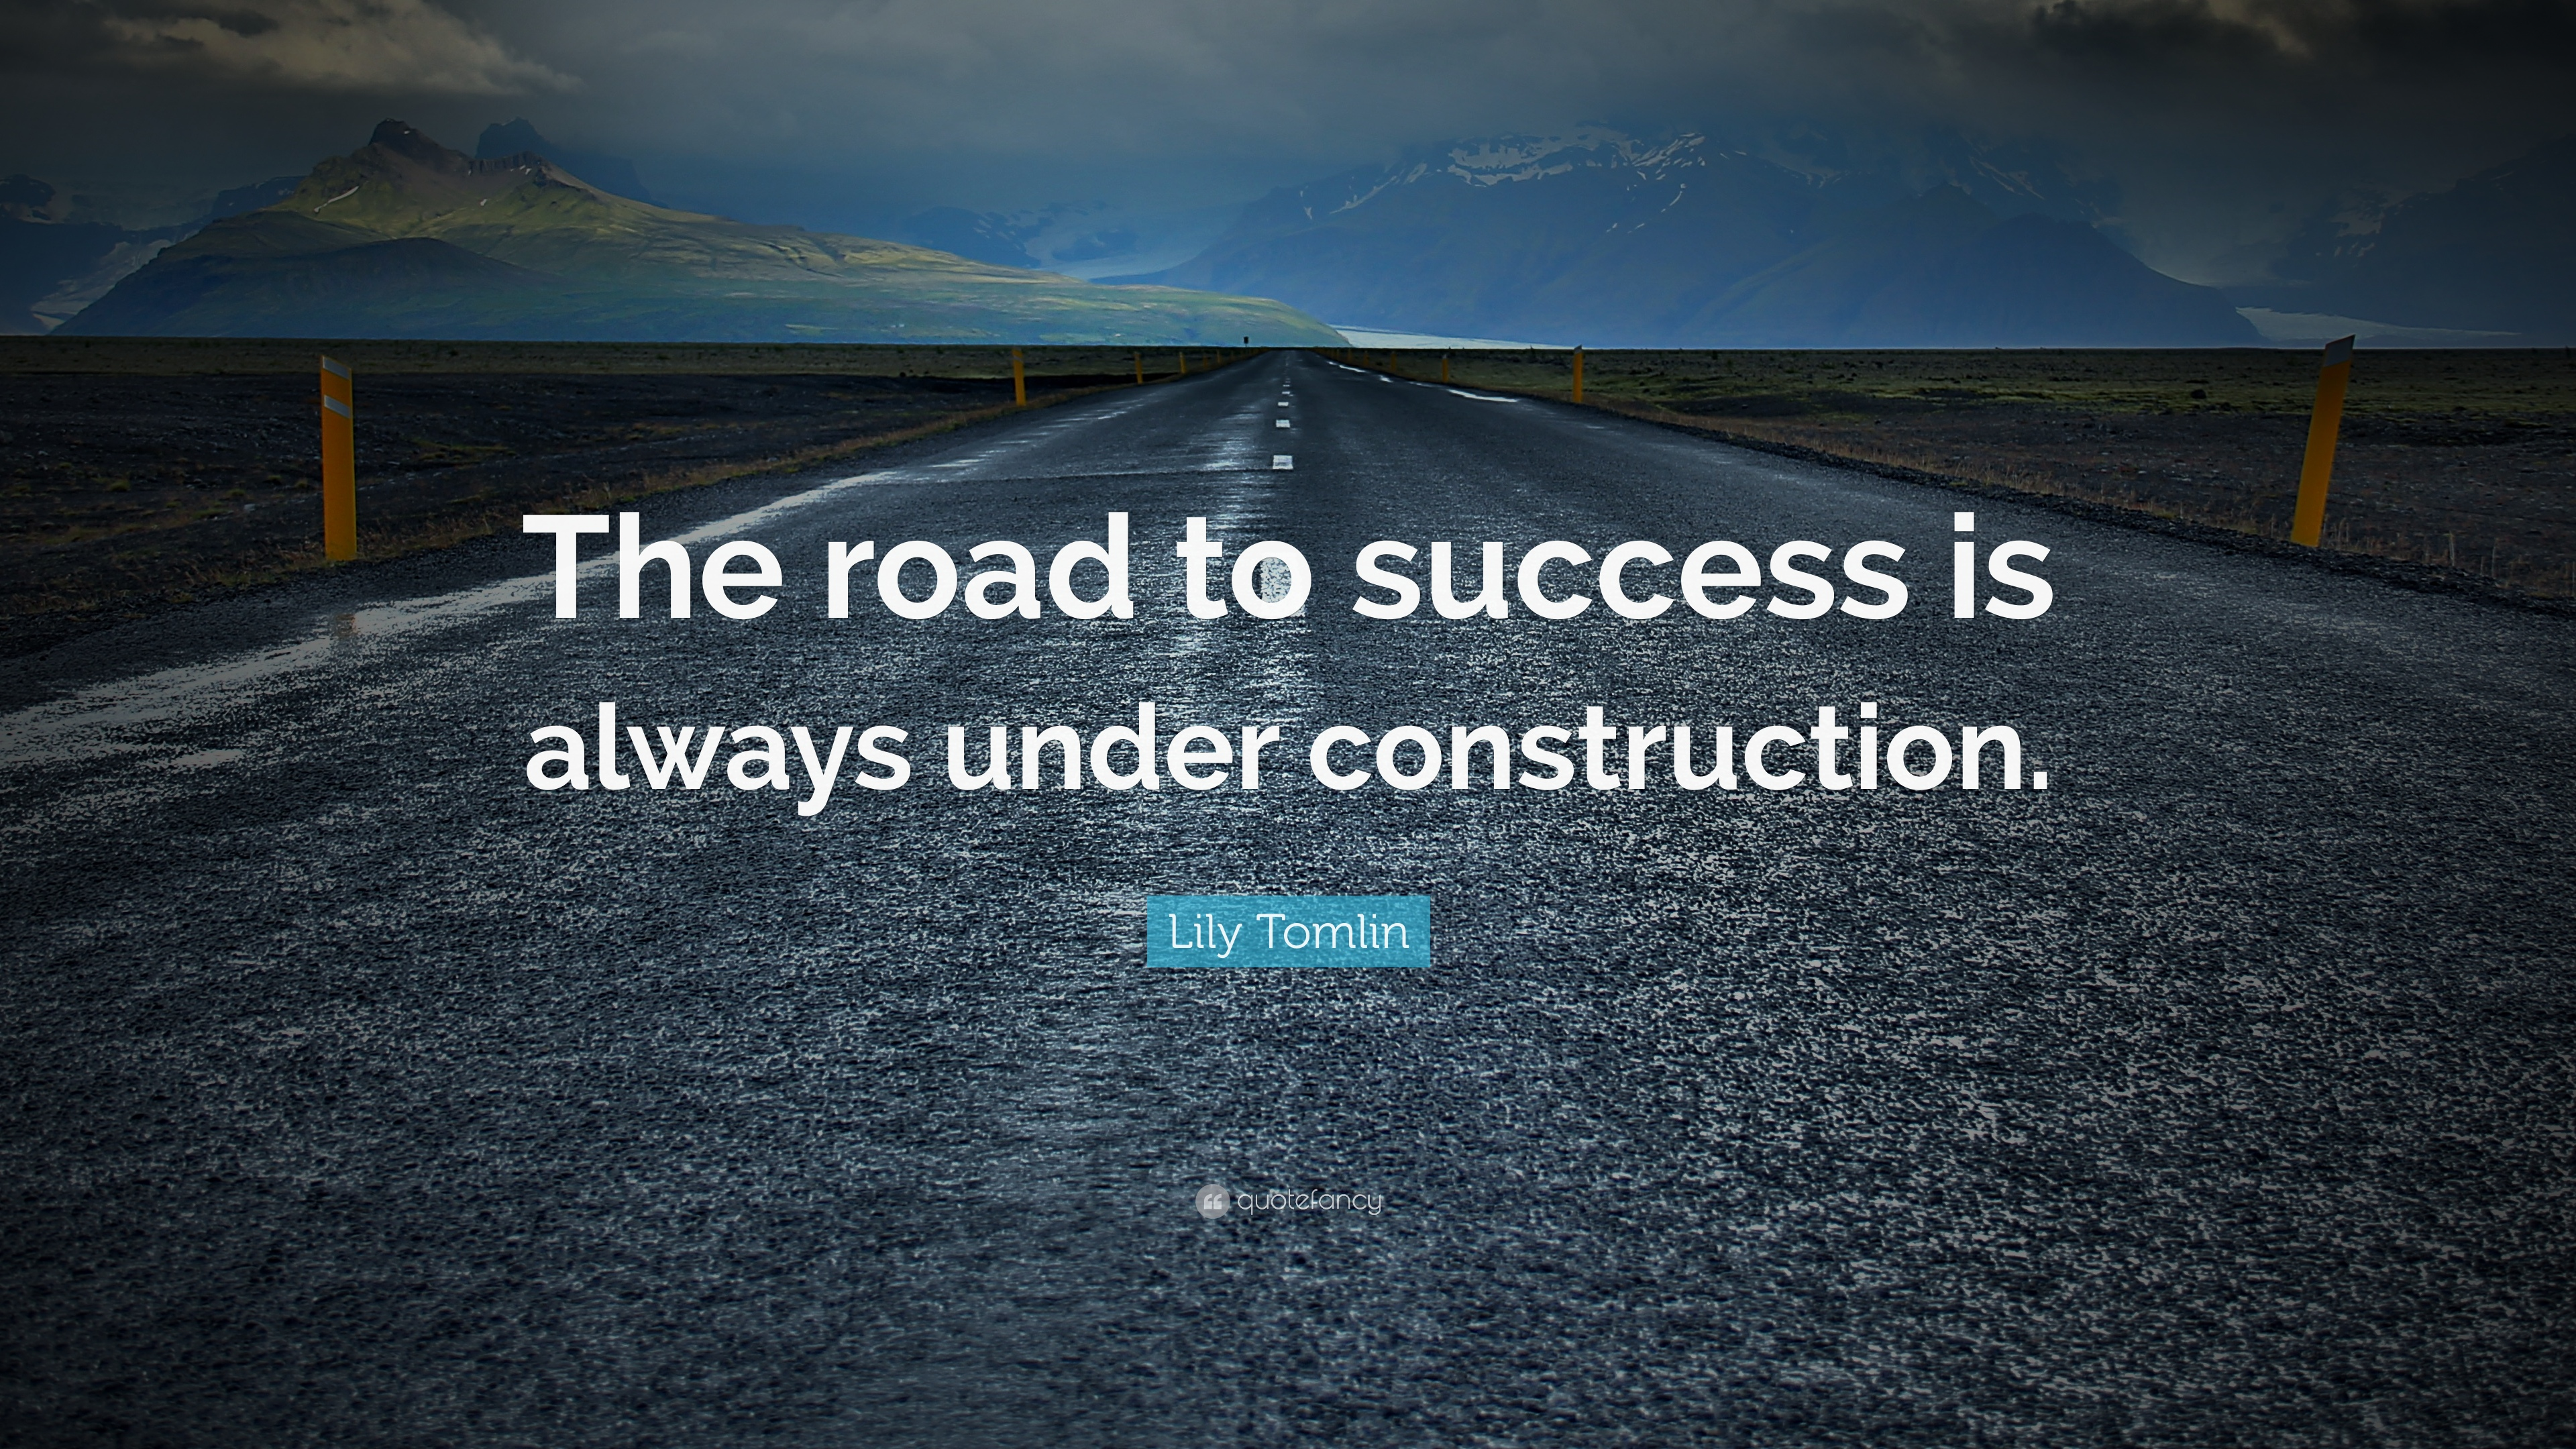 Spiritual Quotes For Laptop Wallpaper Lily Tomlin Quote The Road To Success Is Always Under